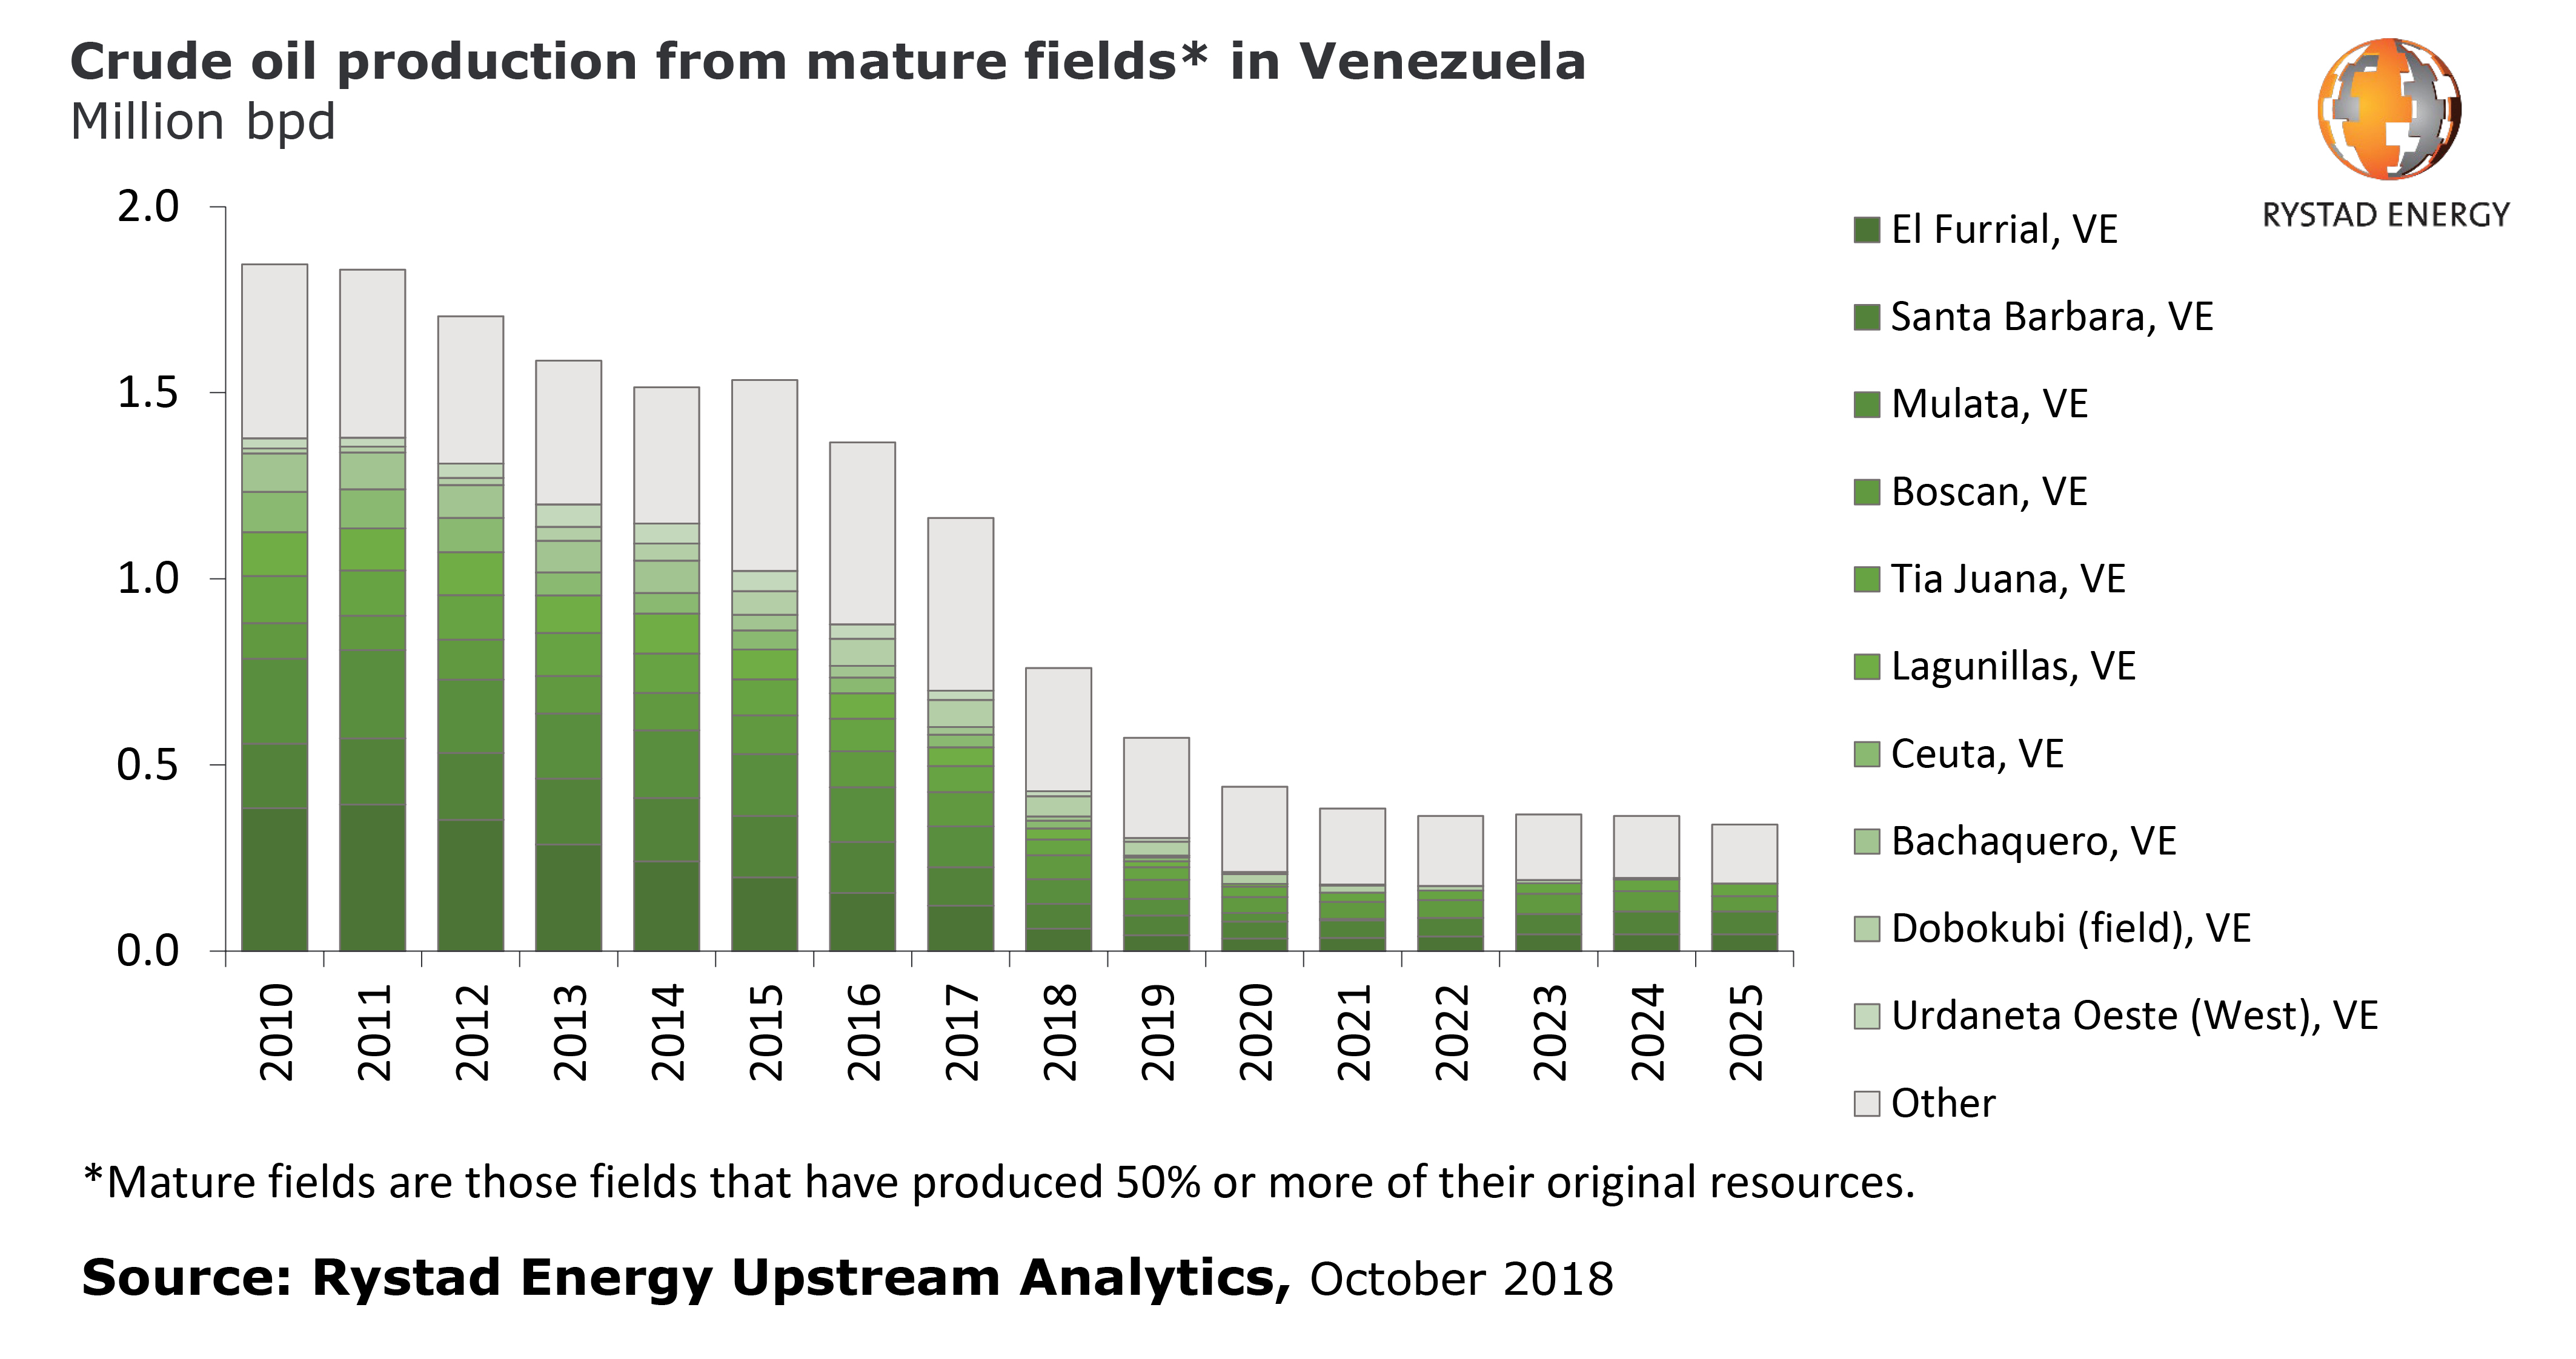 A bar chart showing Crude oil production from mature fields in Venezuela from 2010 to 2025. Source: Rystad Energy Upstream Analytics, October 2018